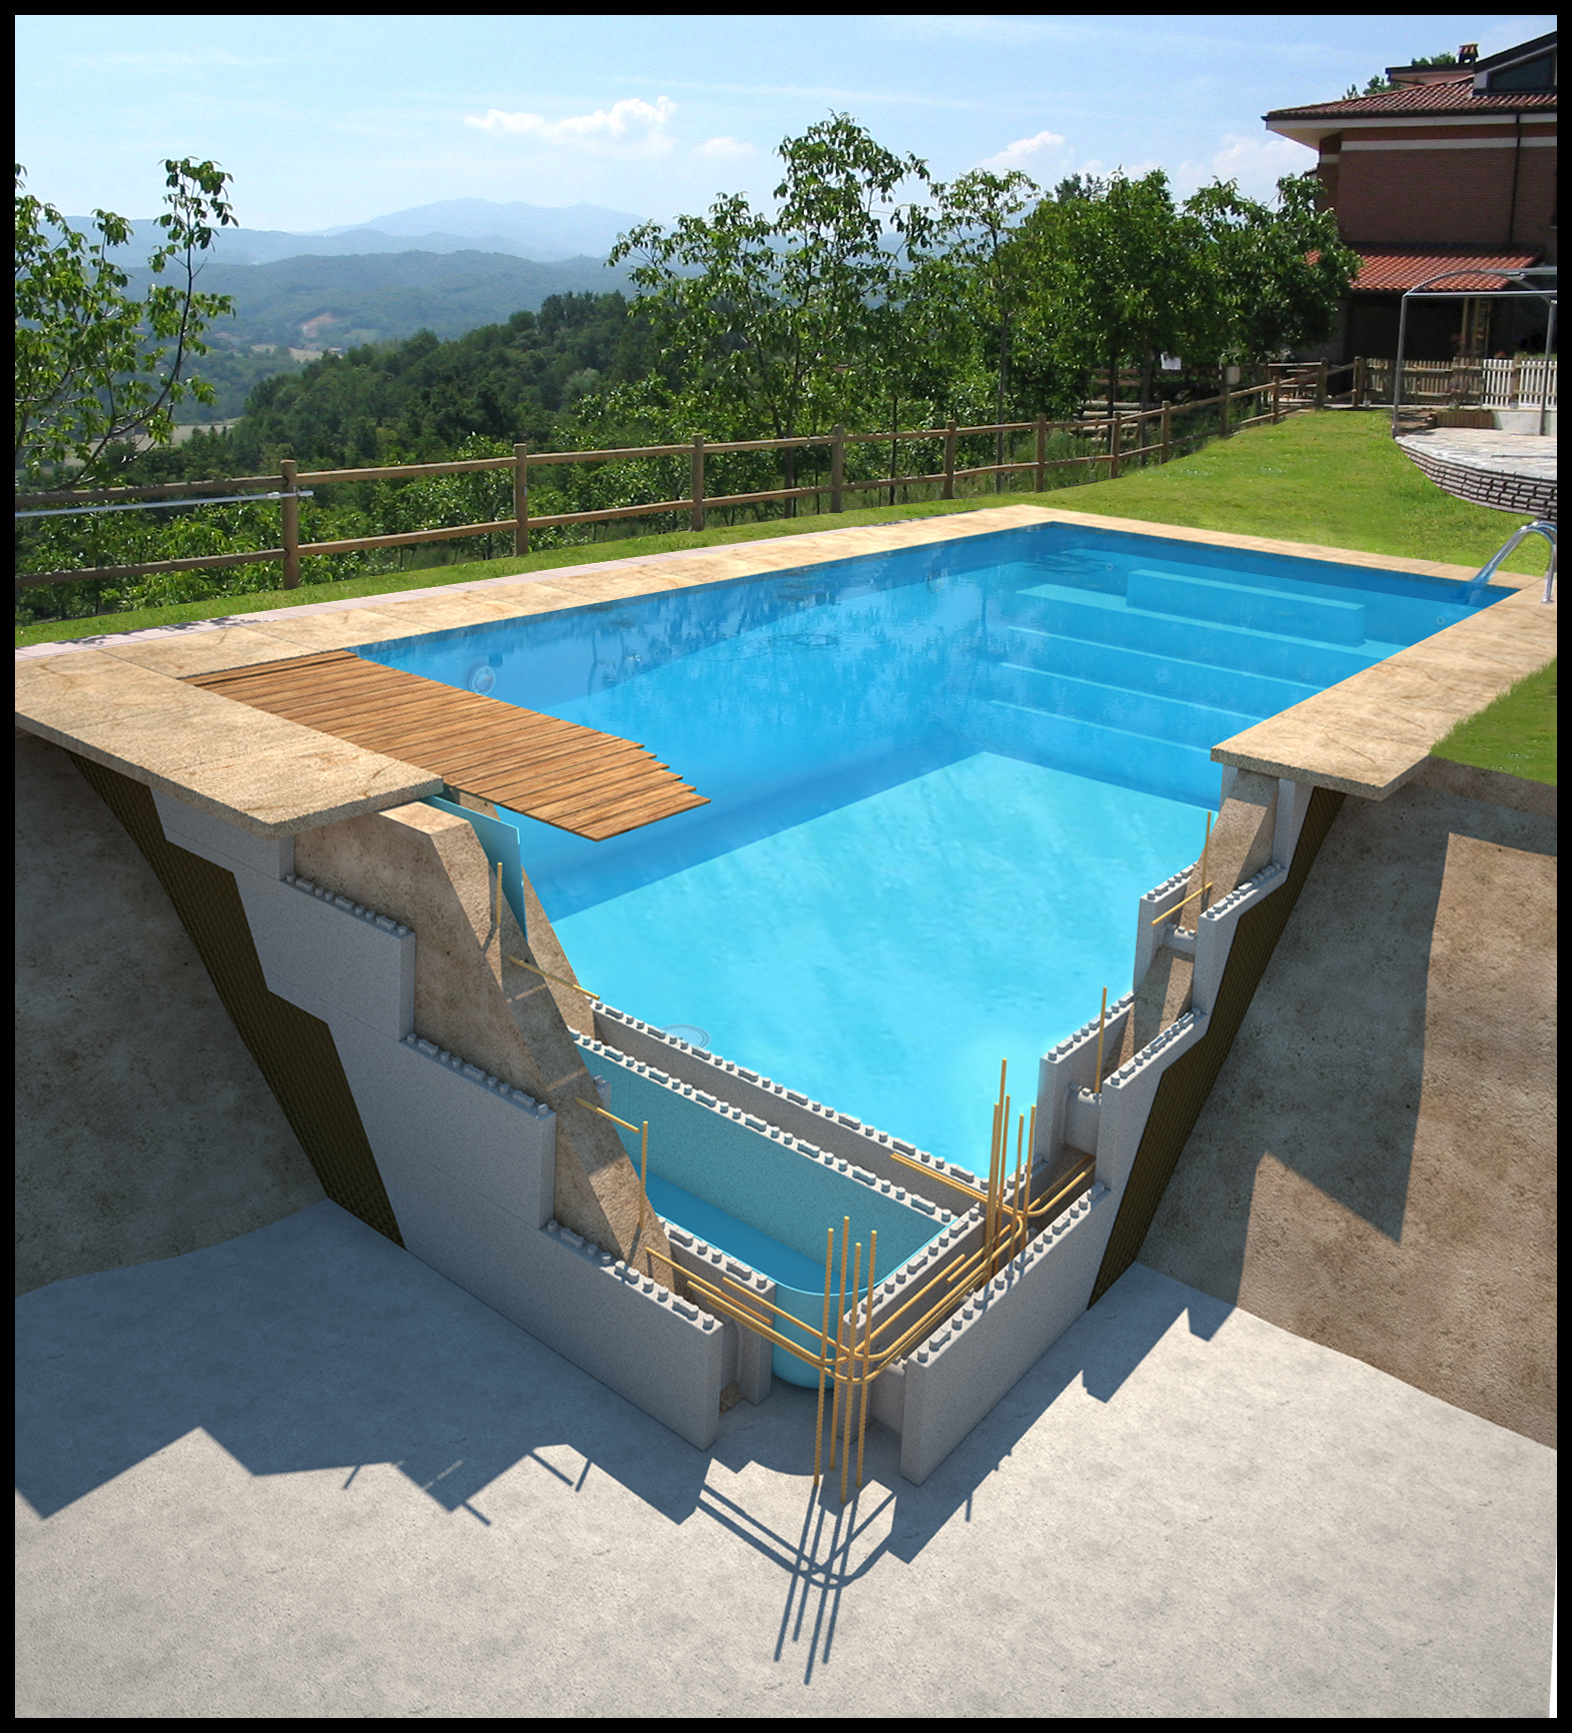 Ferraillage piscine beton simple with ferraillage piscine for Les pieux piscine